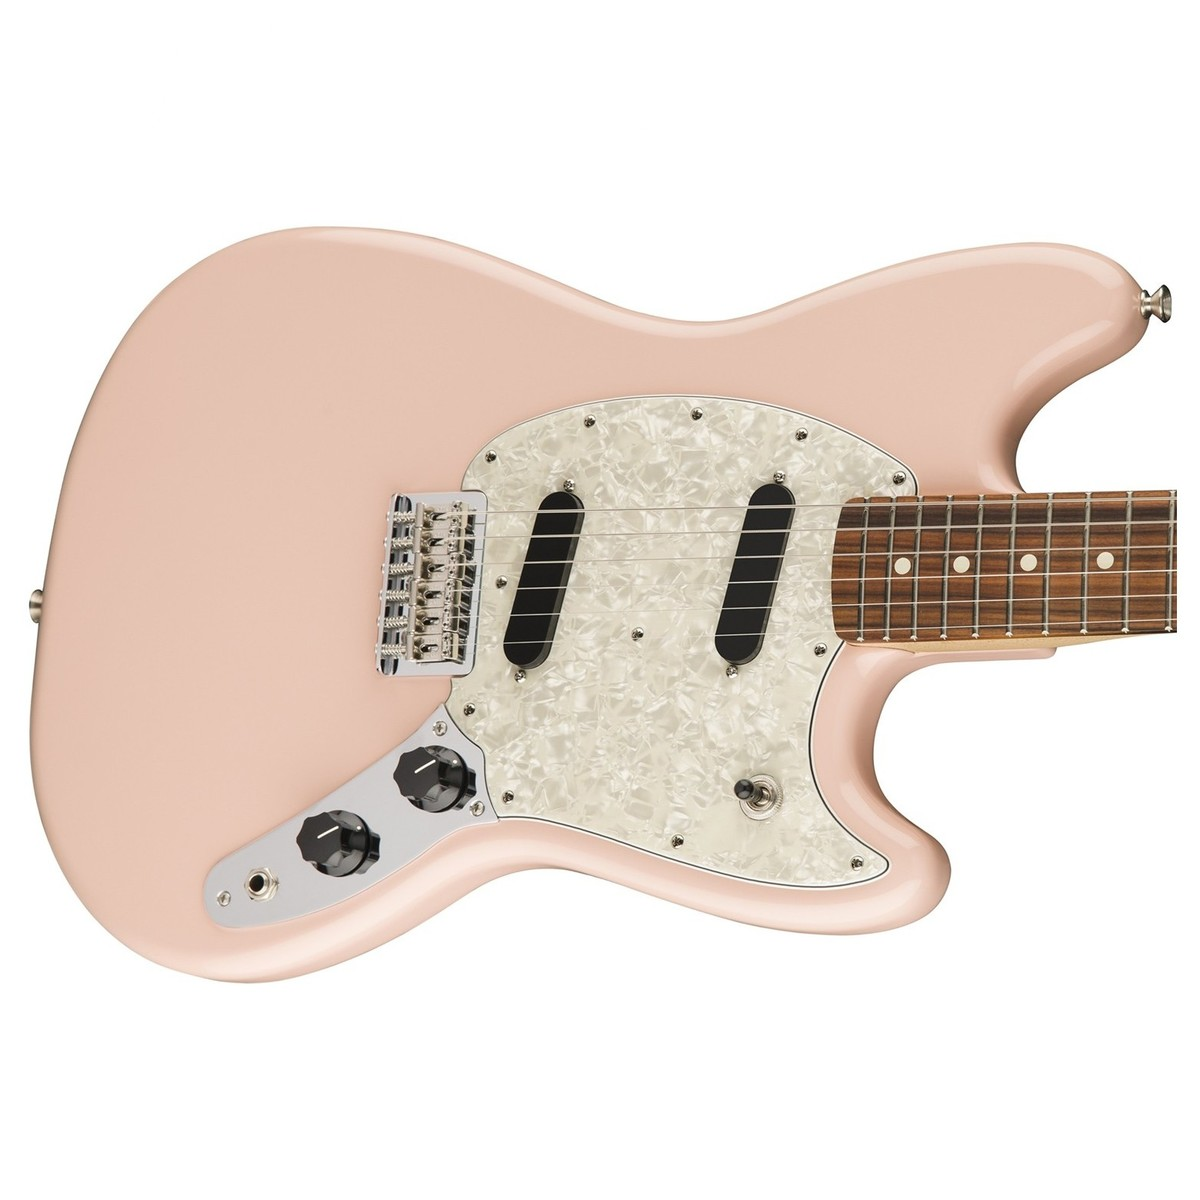 disc fender mustang electric guitar pau ferro shell pink at gear4music. Black Bedroom Furniture Sets. Home Design Ideas